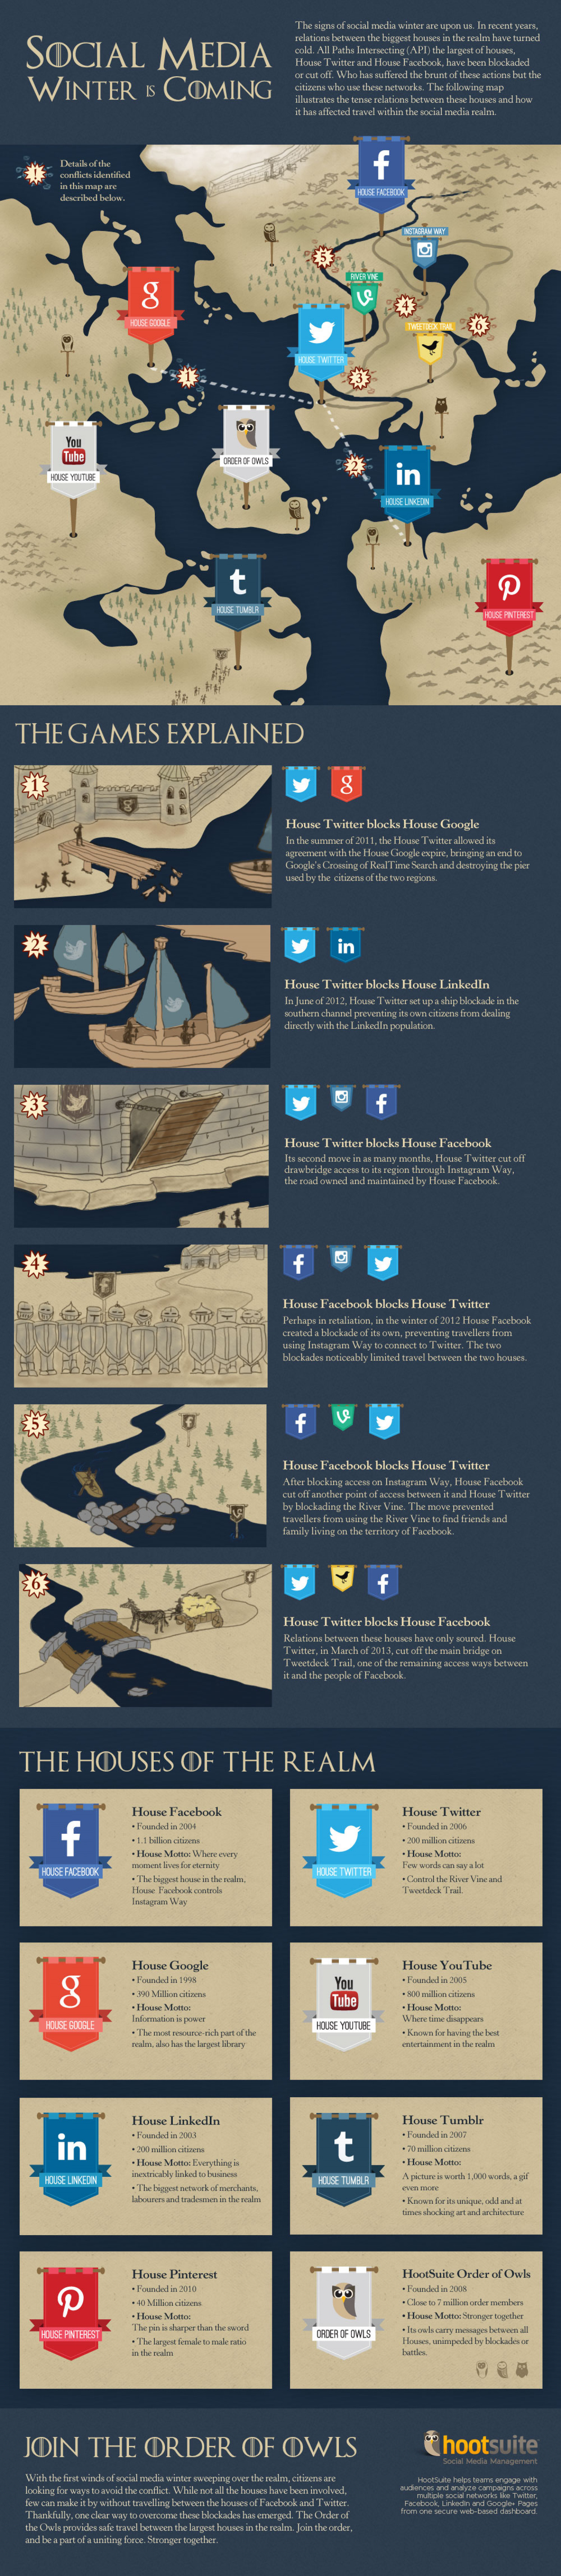 Social Media Winter Is Coming Infographic